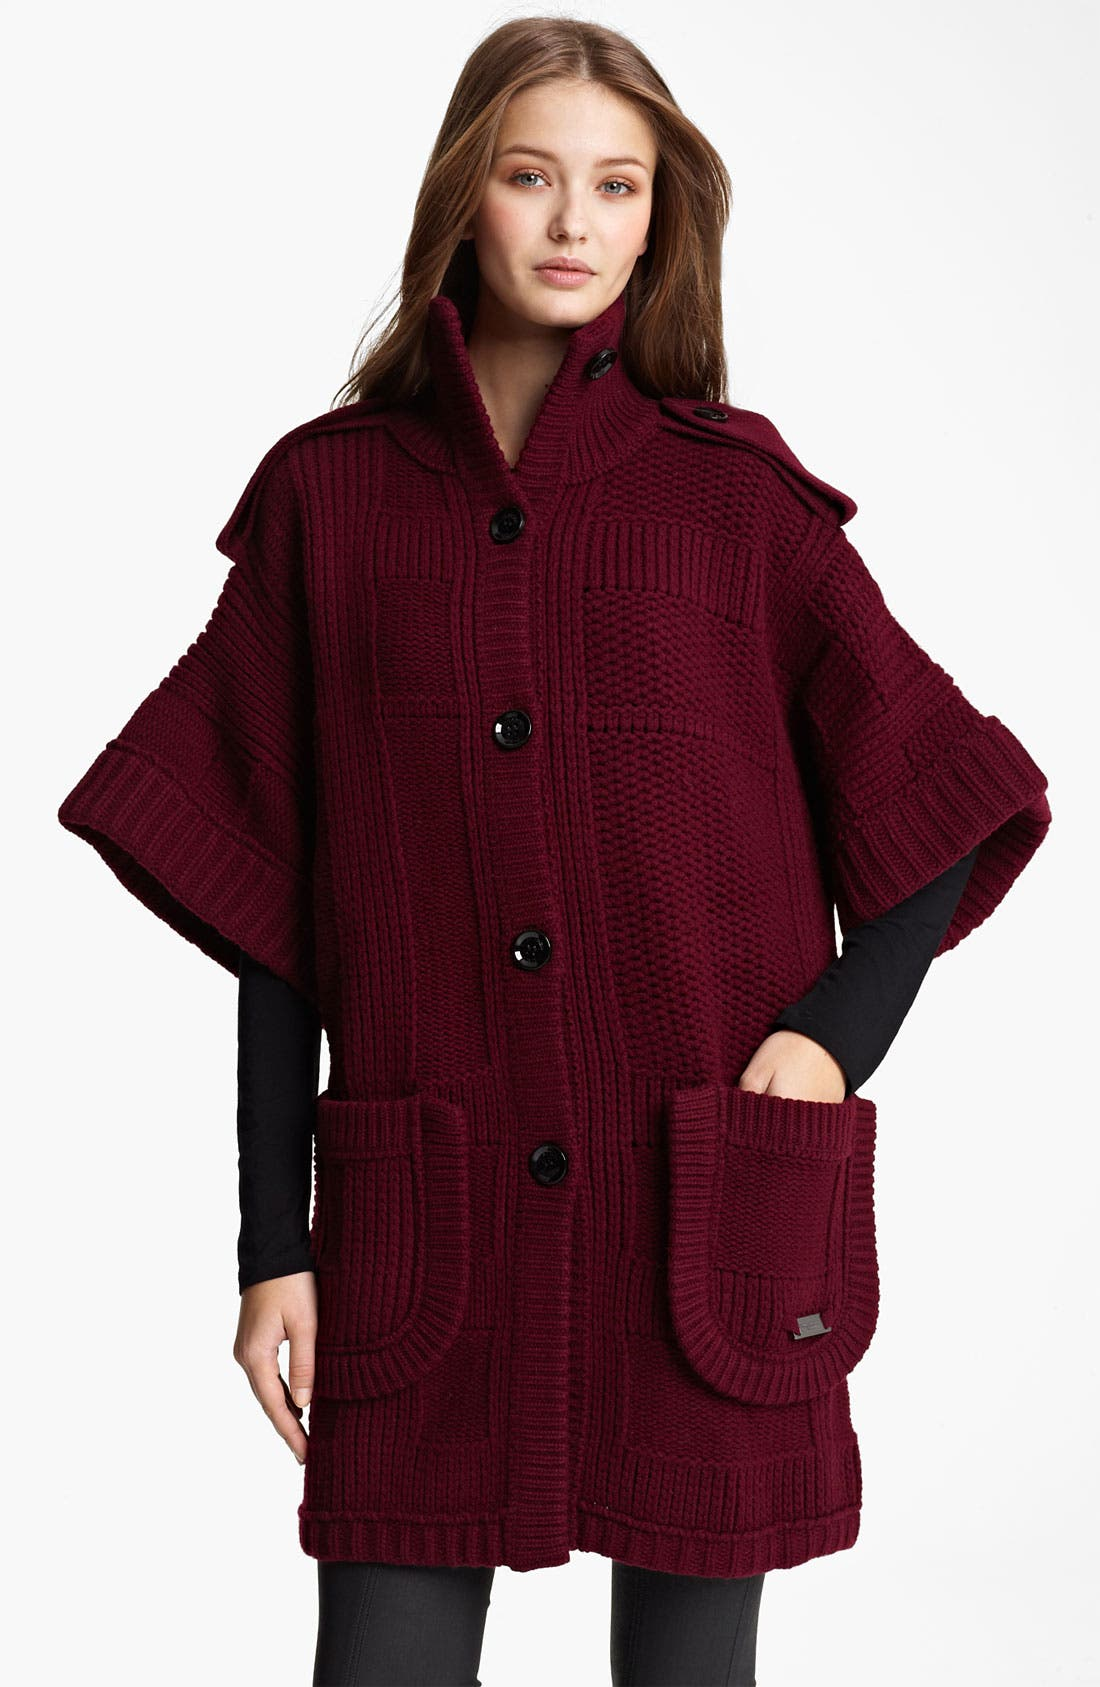 Main Image - Burberry Brit Chunky Knit Cardigan (Online Exclusive)